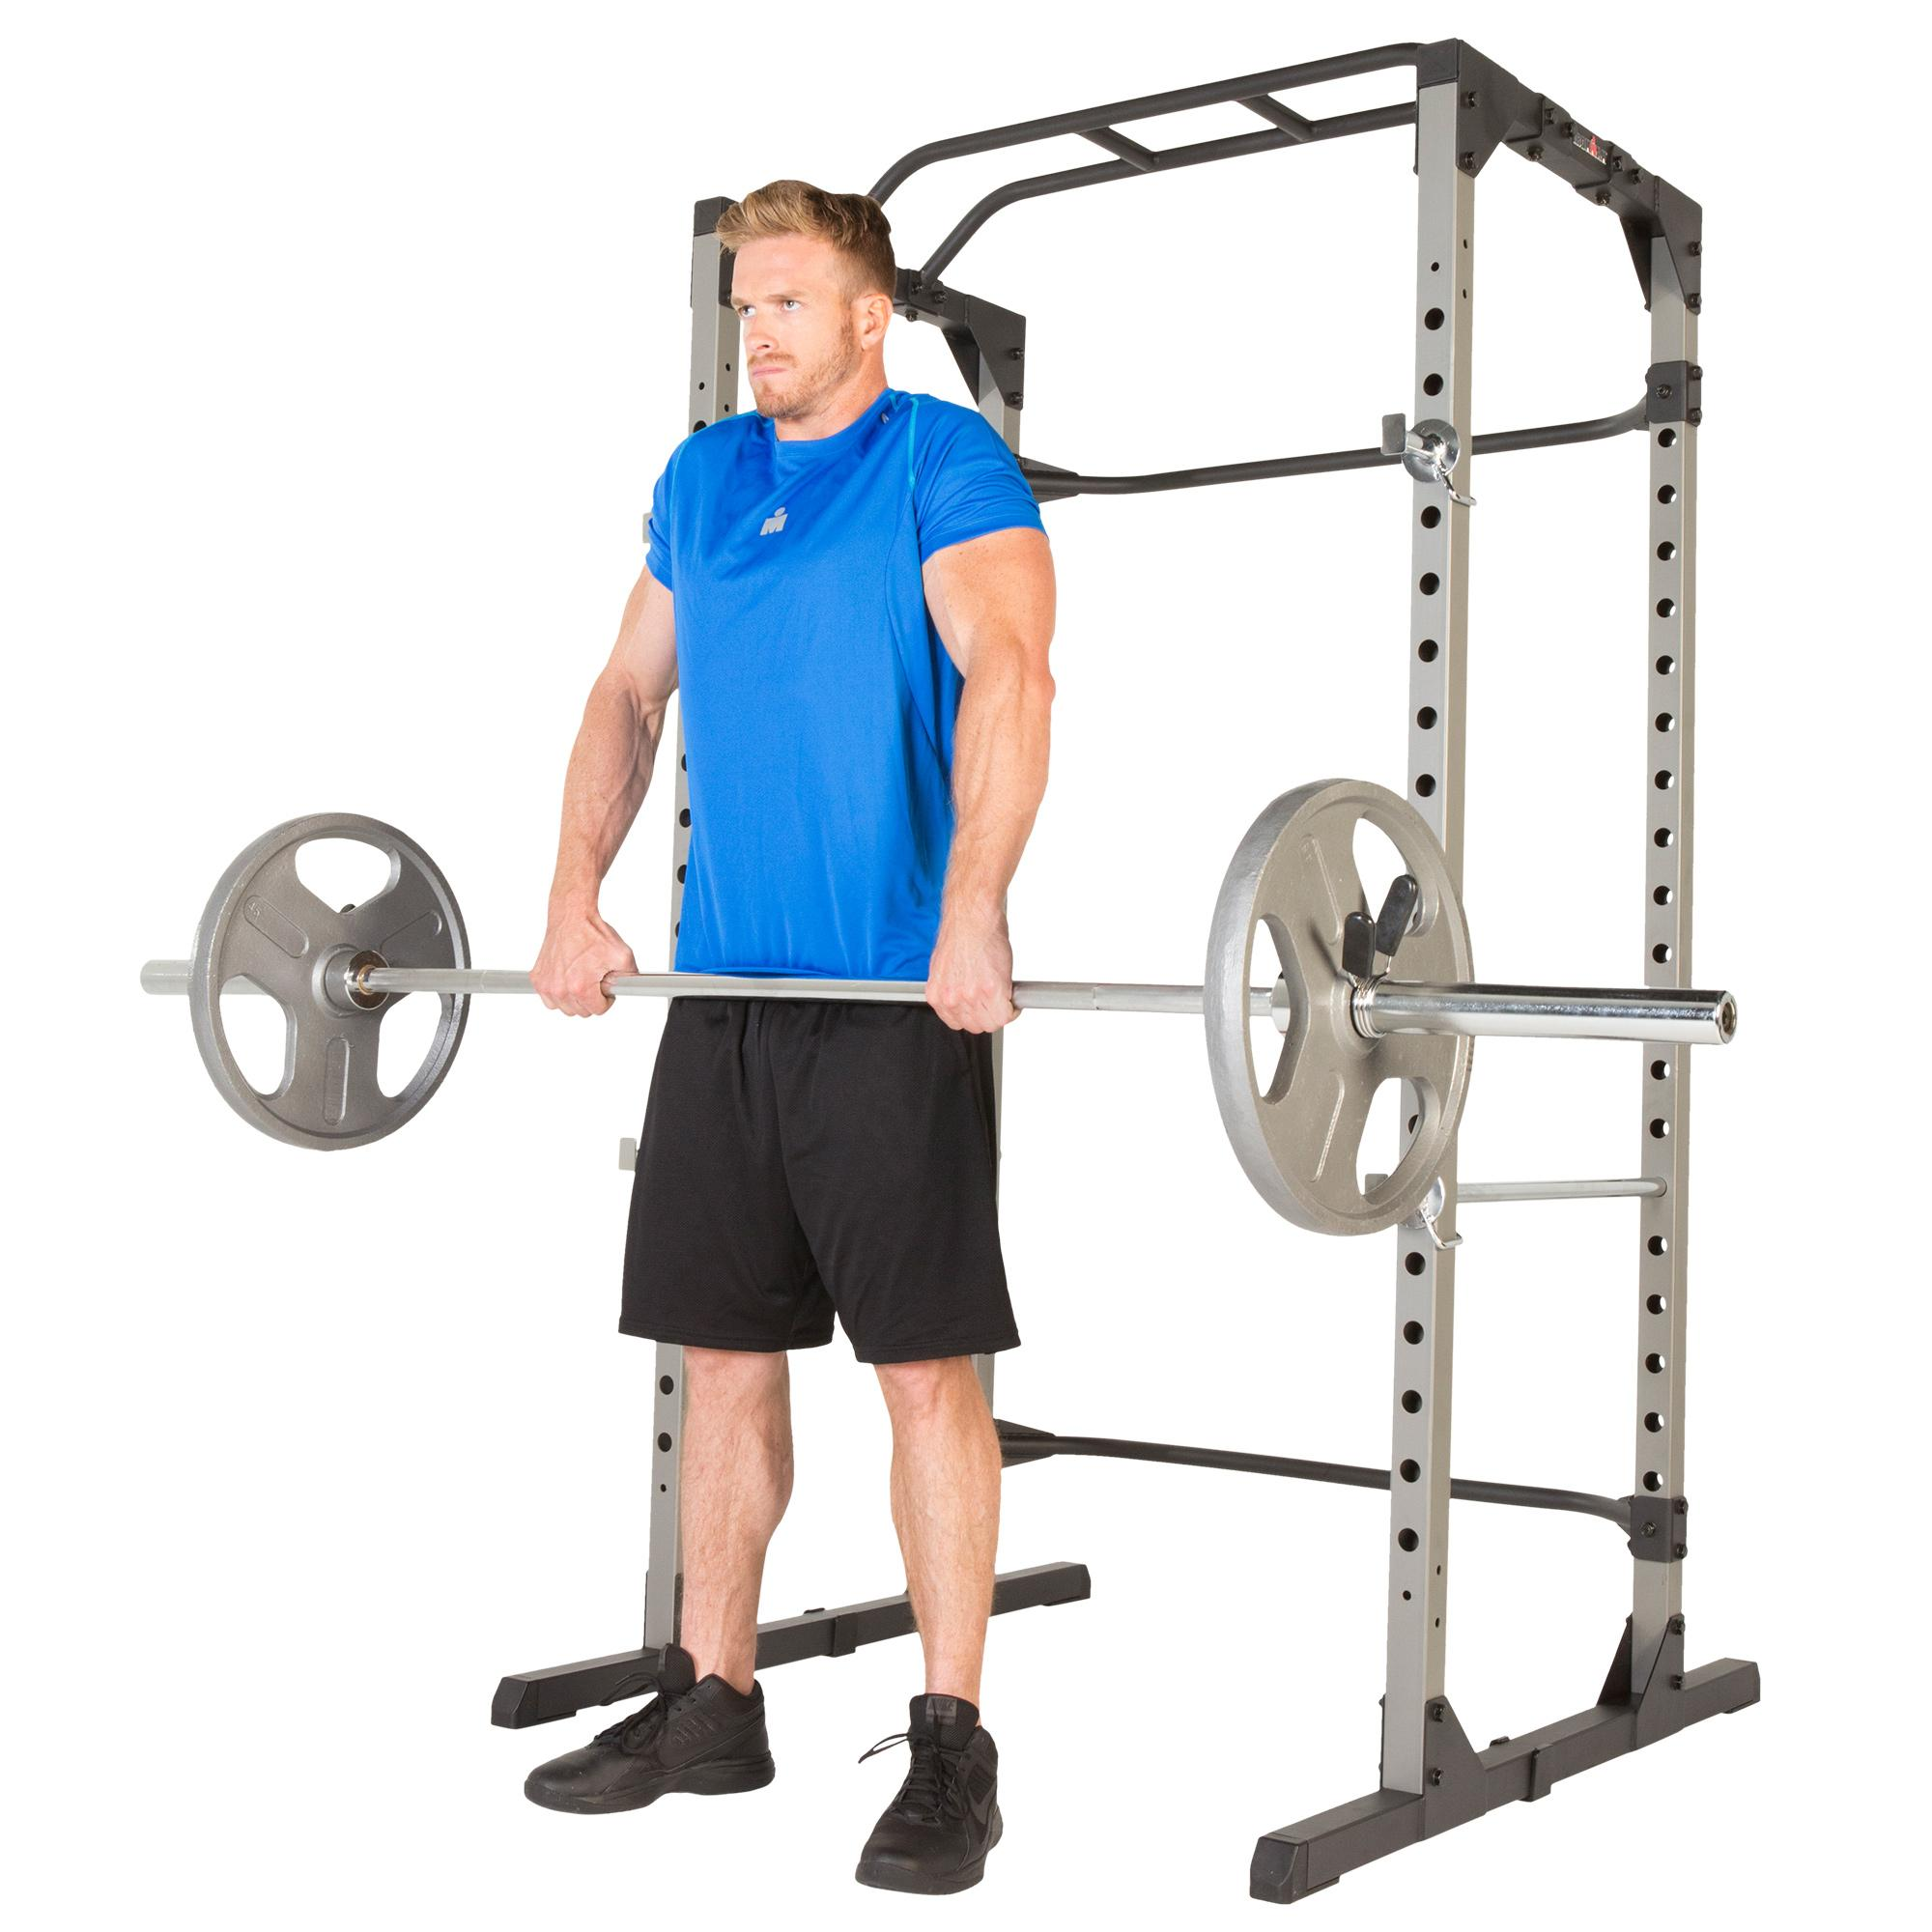 Weight Rack Walmart: Amazon.com : IRONMAN H-Class 810XLT Power Cage With 800Lbs